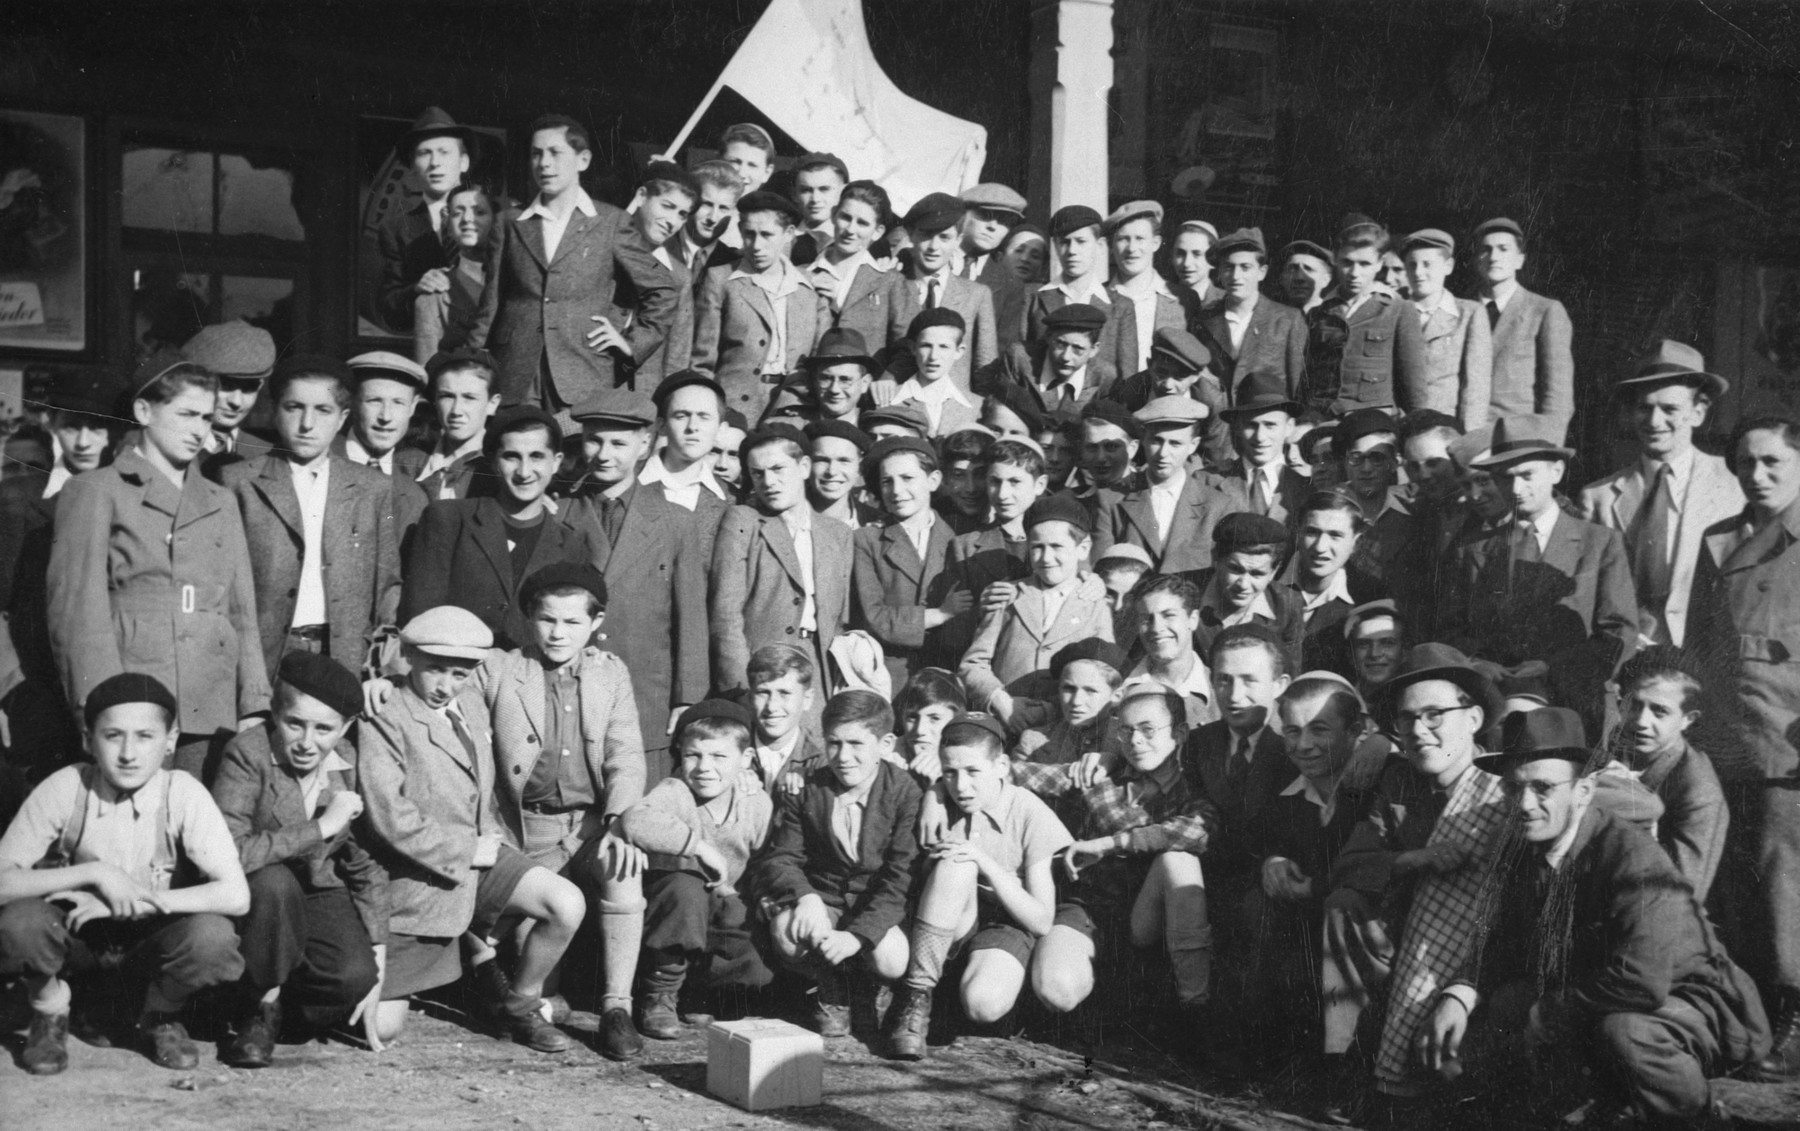 Group portrait of Jewish youth and members of the religious Zionist youth movement, Poale Agudat Yisrael, in a children's home in Switzerland.